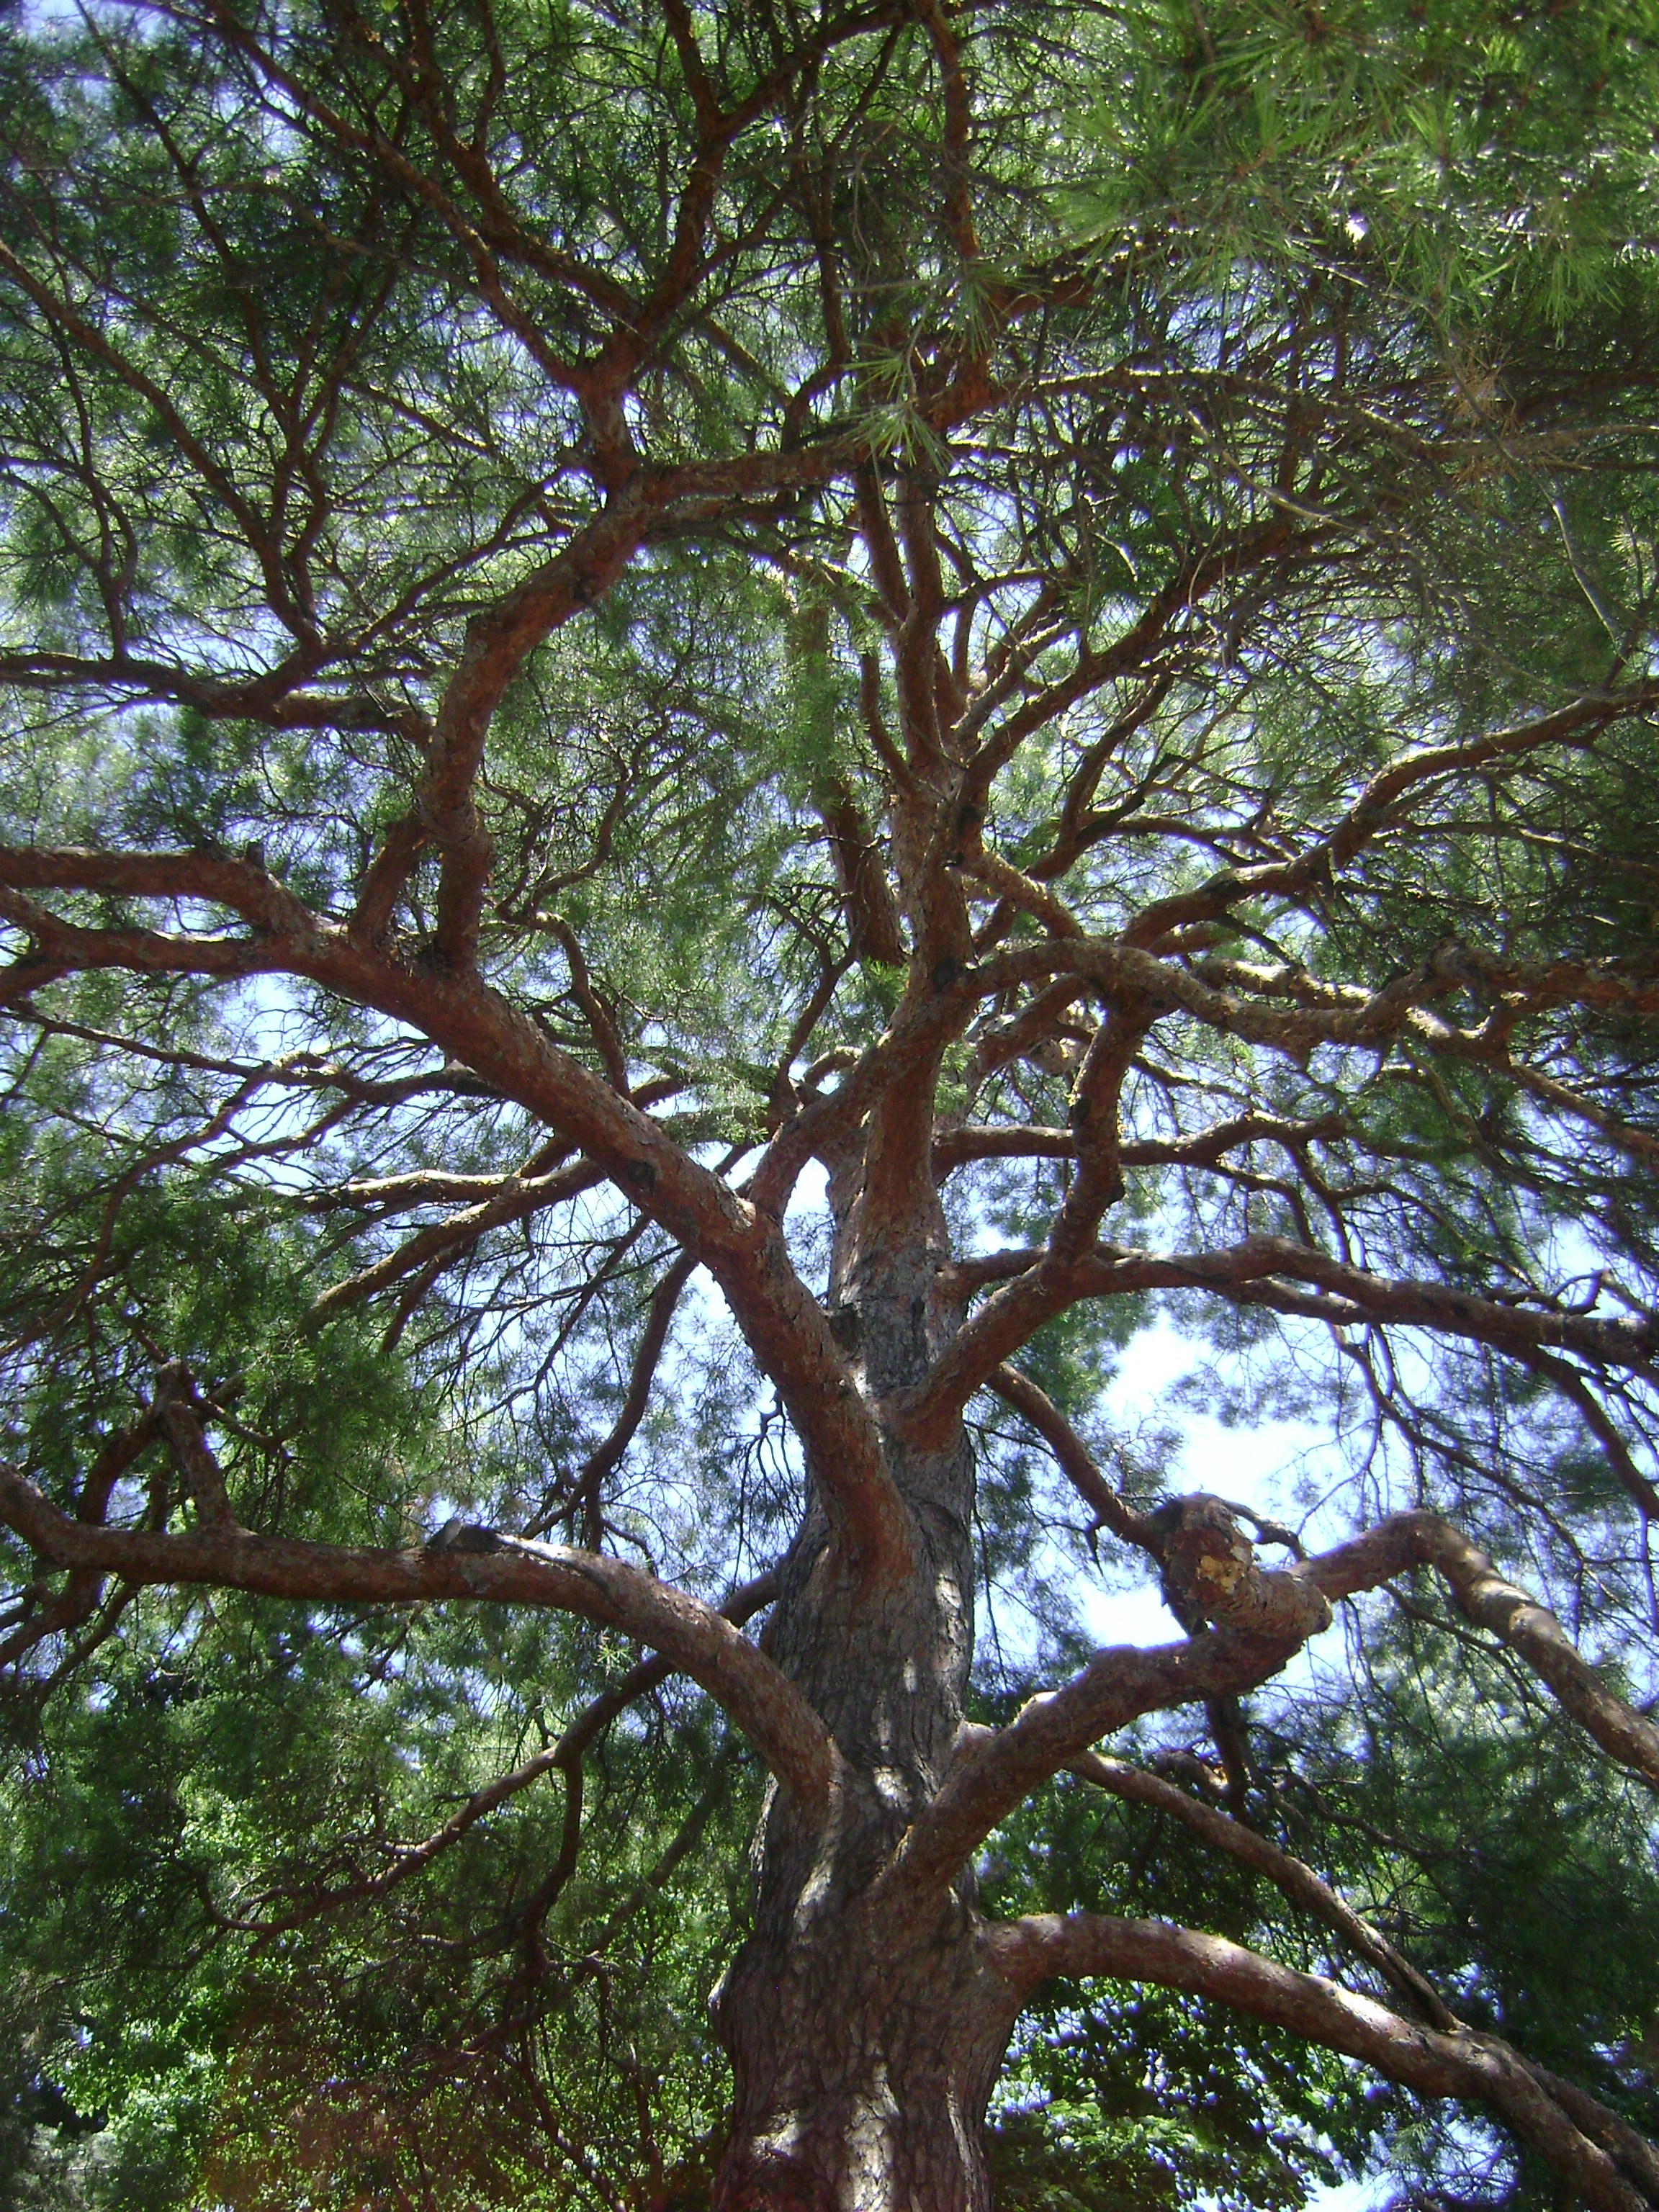 Scotch pine tree canopy.